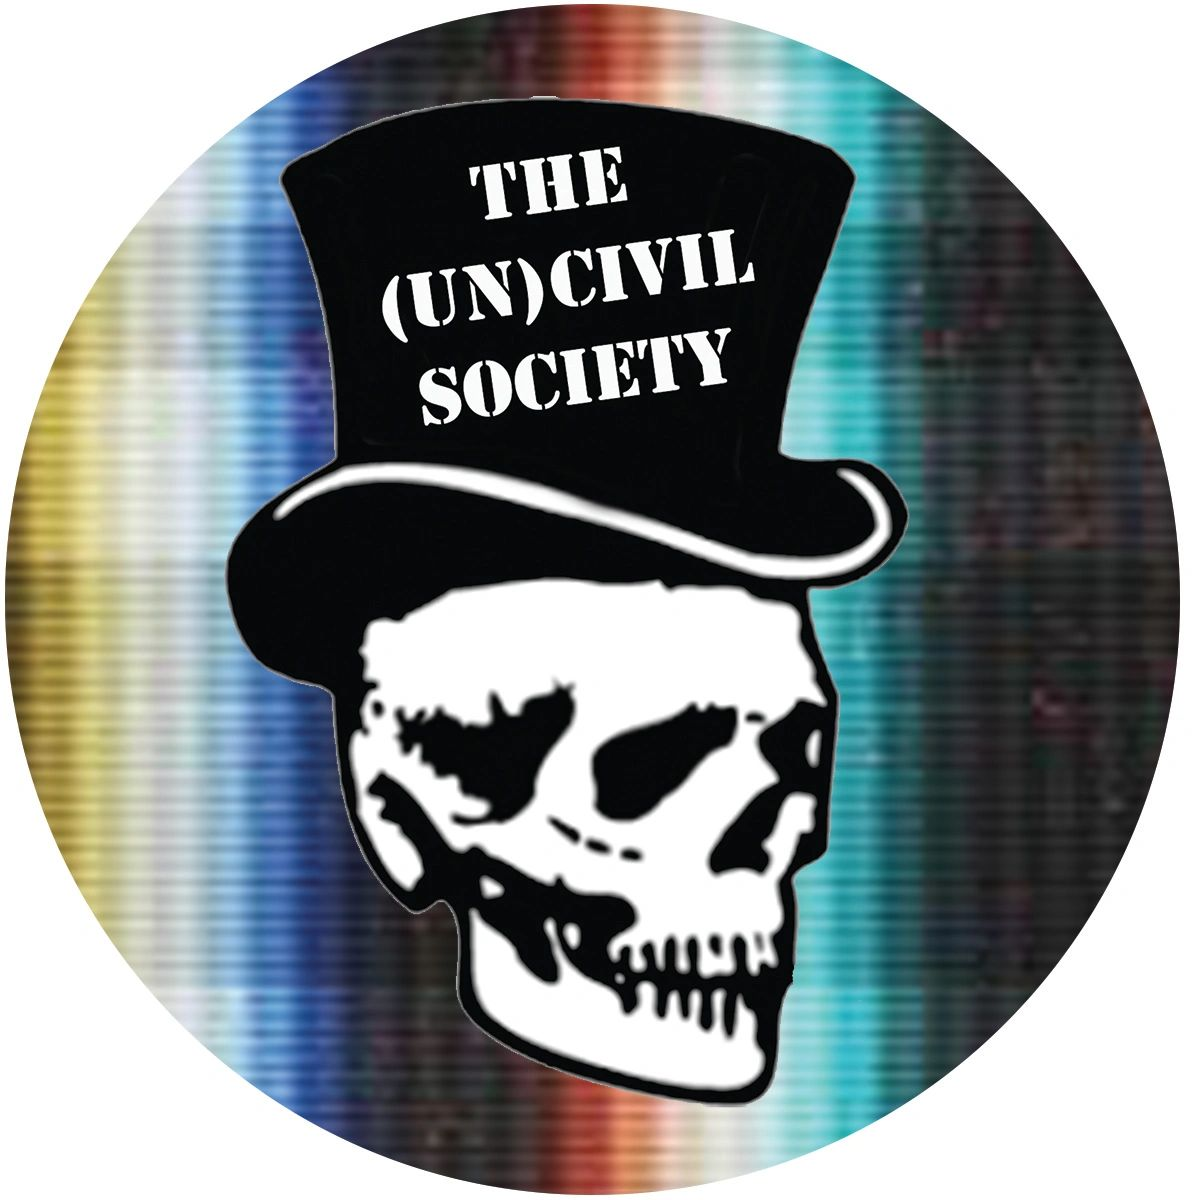 The (un)civil society logo